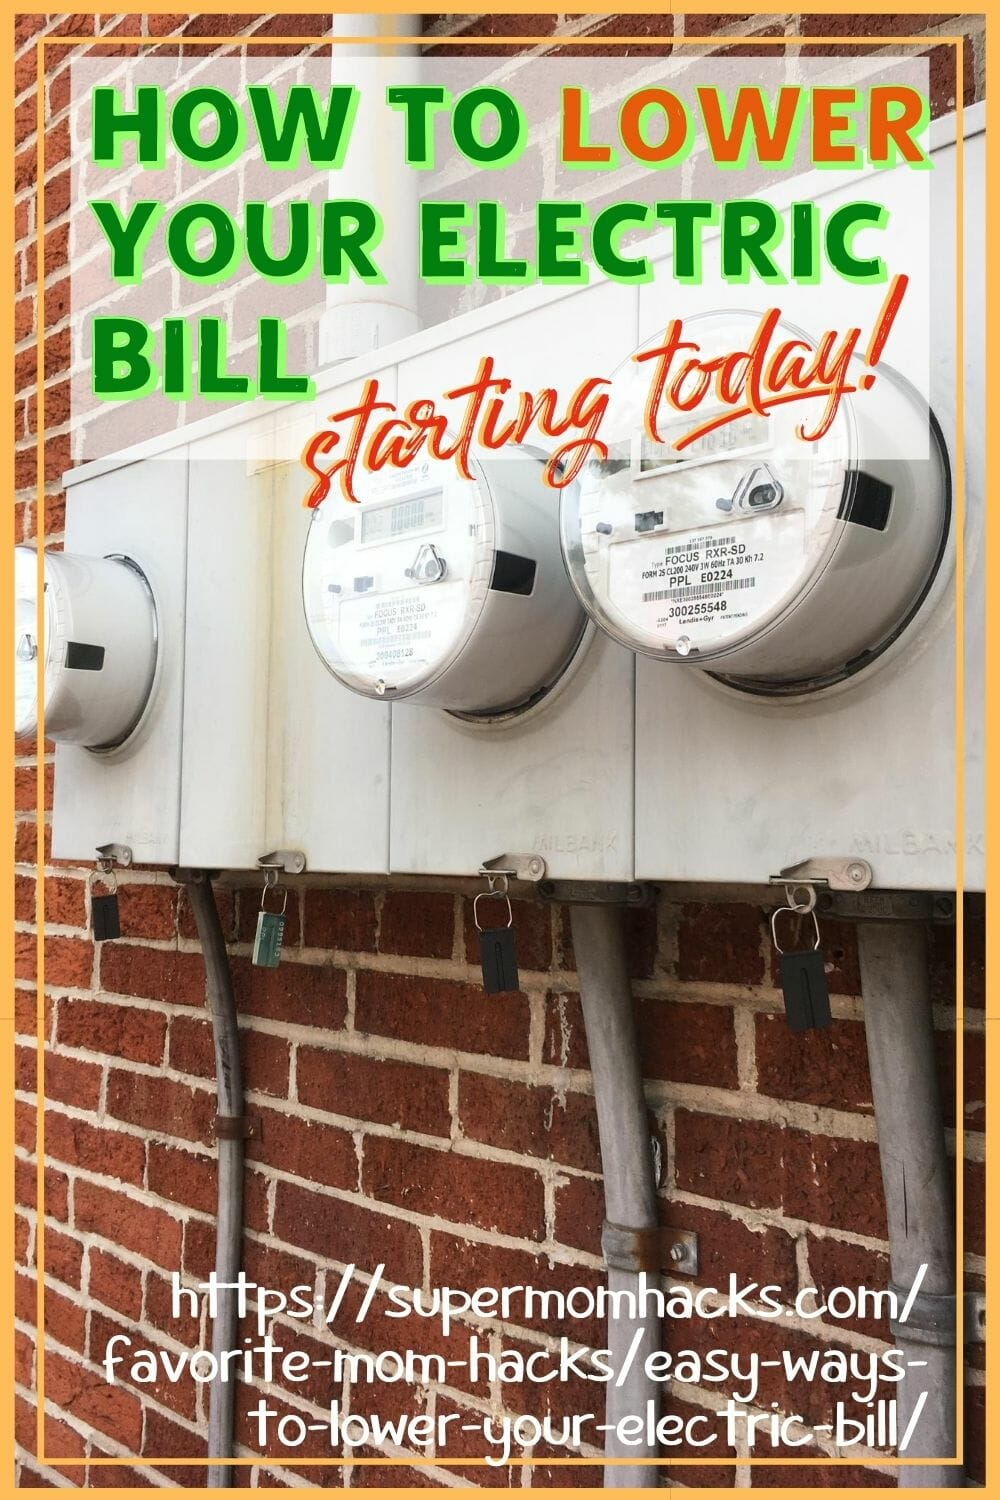 Whether you've got saving the planet on your mind, or just a recent case of sticker shock, this post has plenty of easy ways to lower your electric bill. Easy Ways to Lower Your Electric Bill (Starting Today!) - - SuperMomHacks | lower your electric bill | save on electricity | save on home electric | how to save on electric bills | how to lower home electric bills | save money on | cut electric bills | how to reduce home electricity use | how to lower home energy costs | cut home electric costs